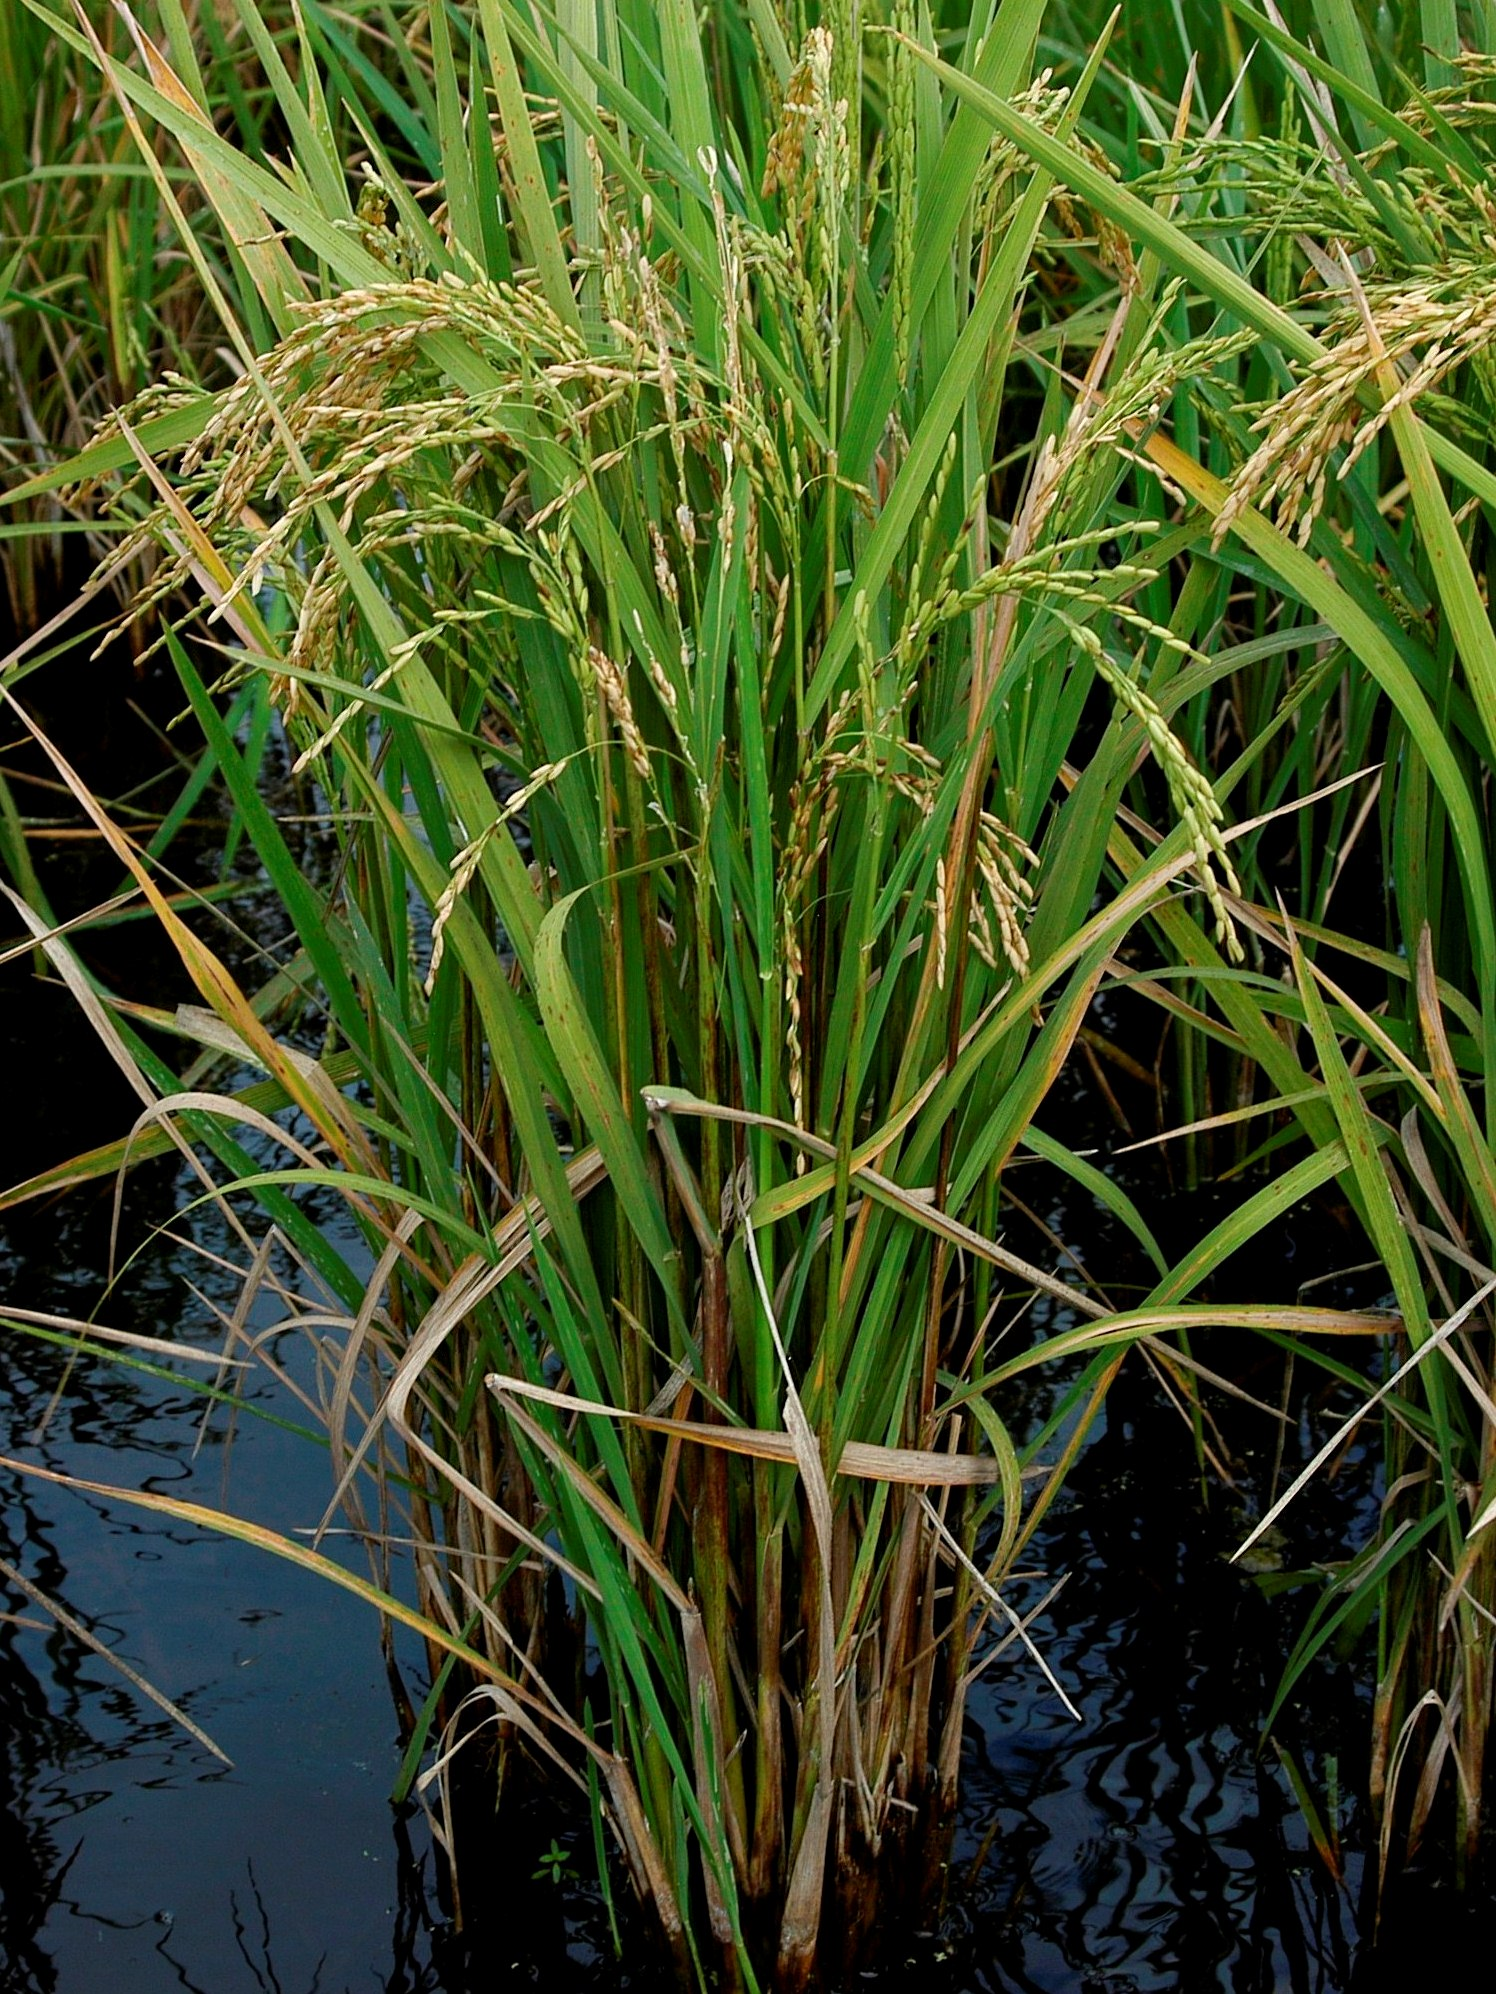 Infested rice plant.